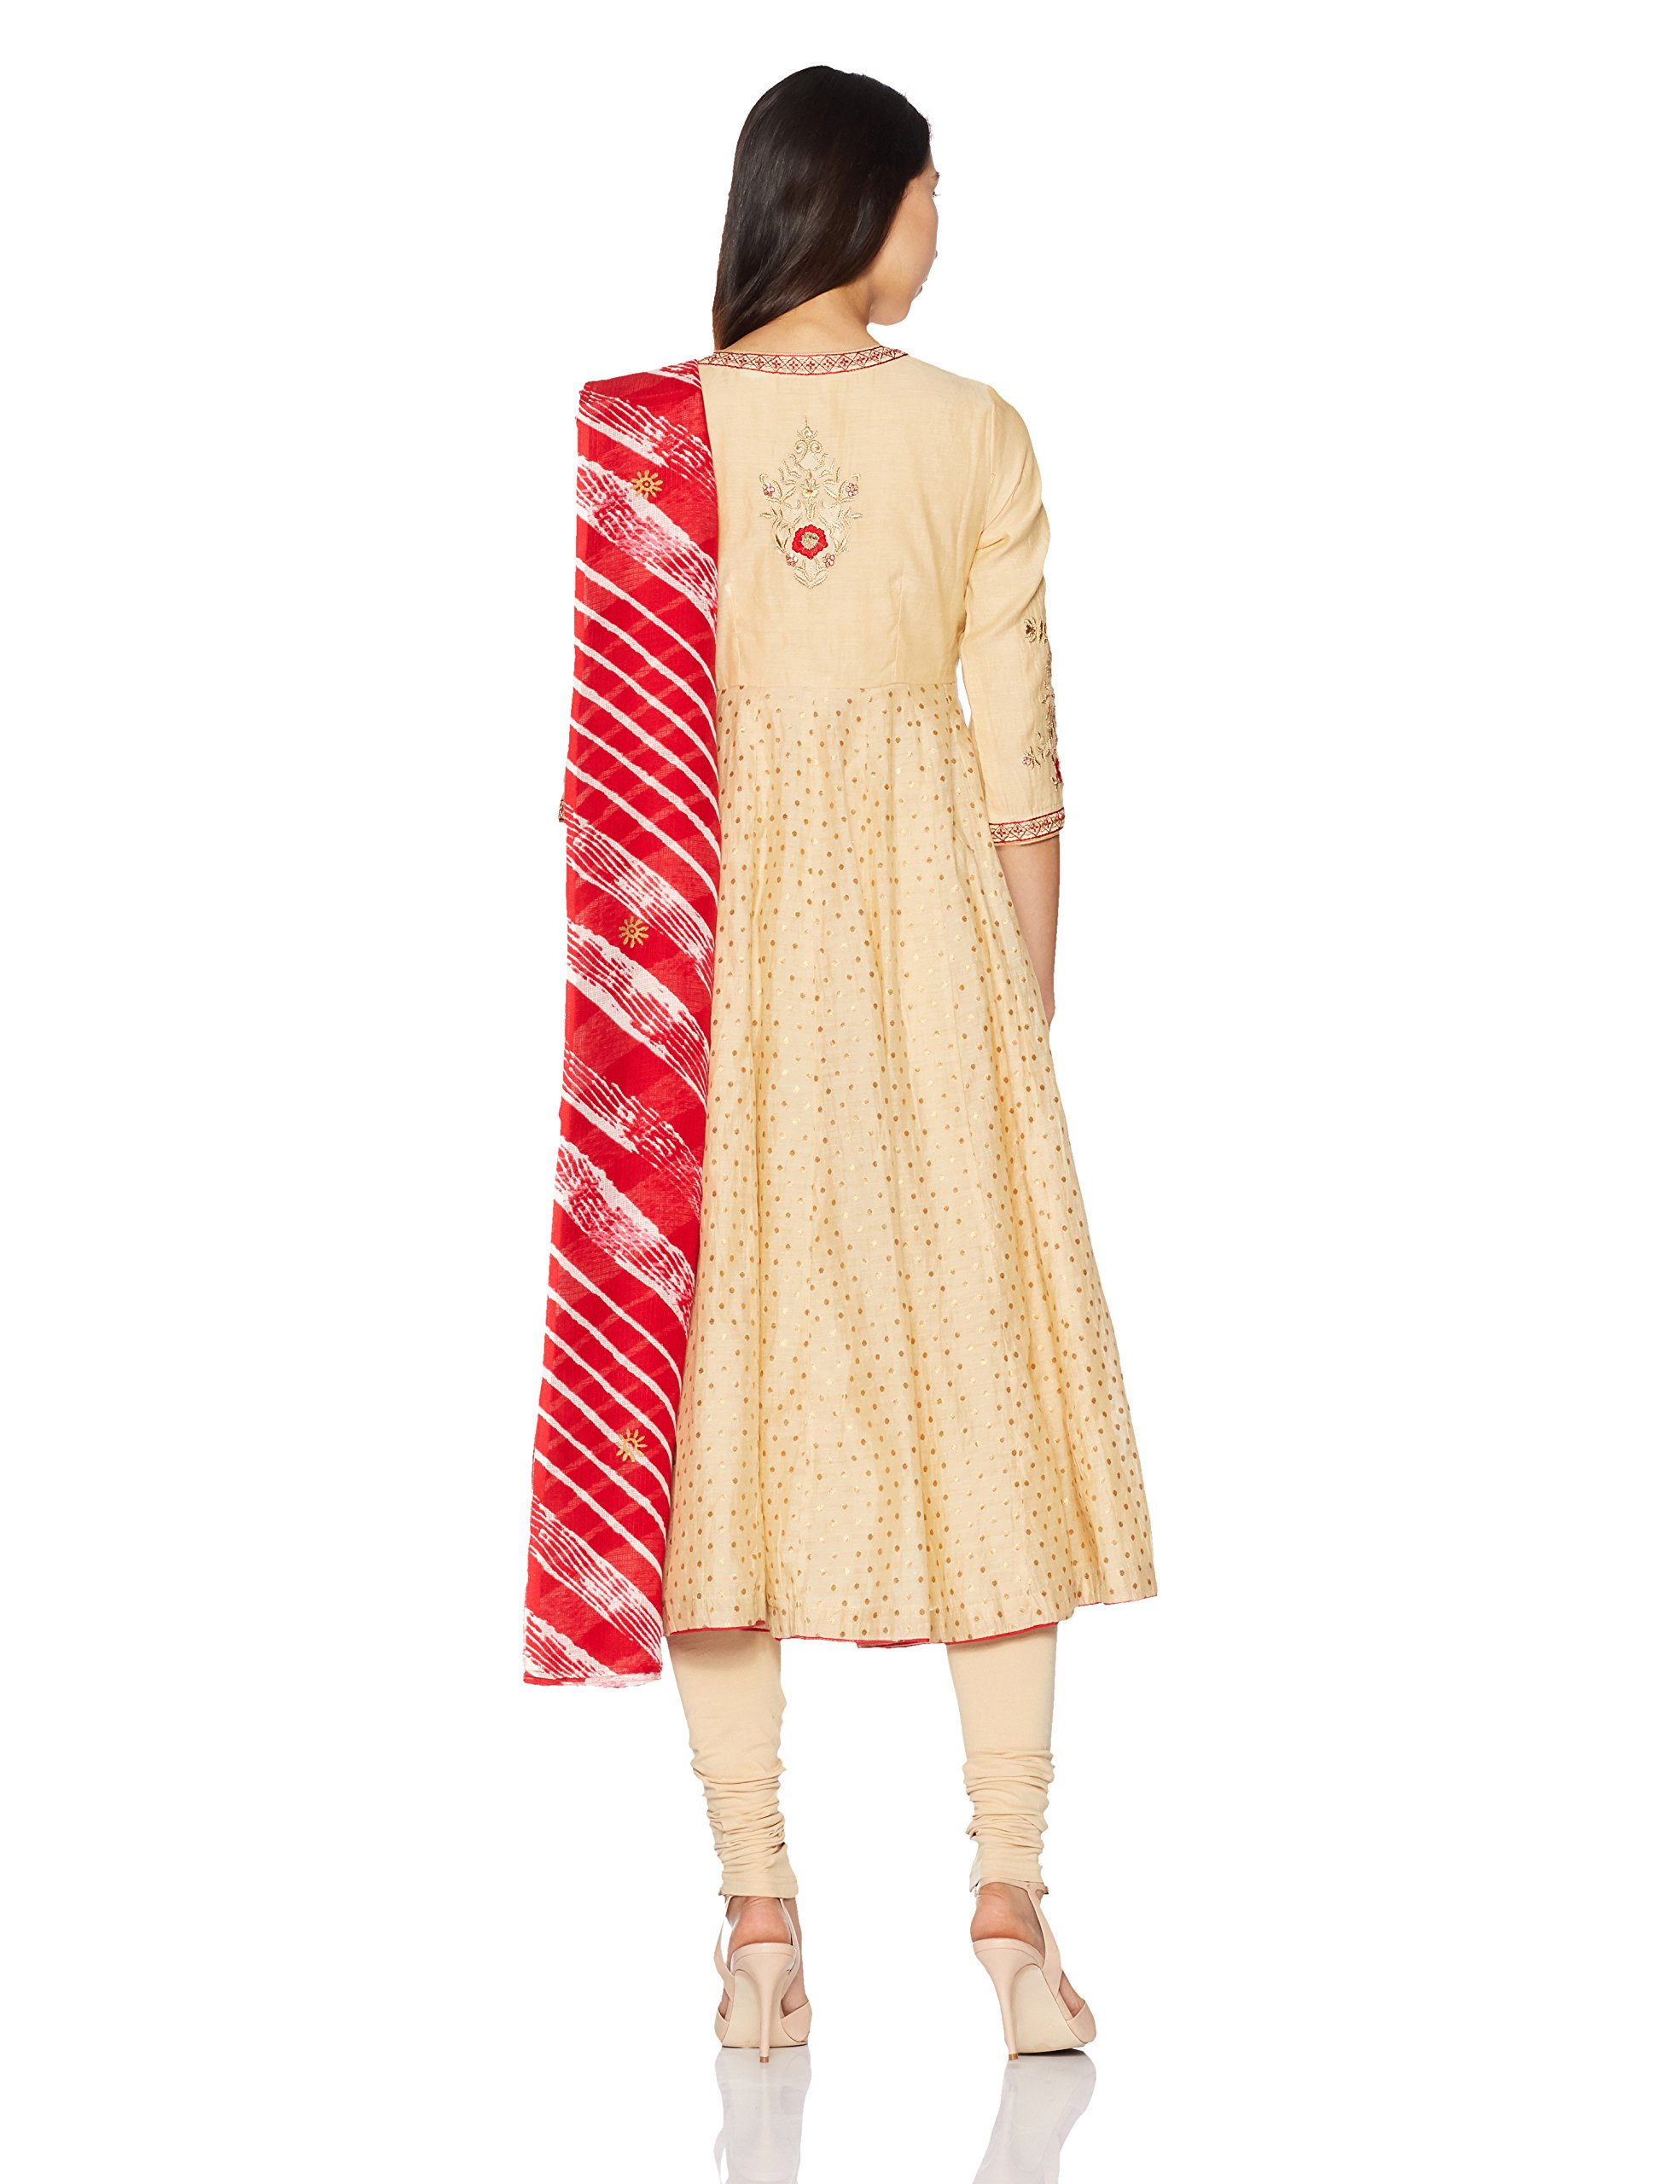 BIBA Women's Anarkali Poly Cotton Suit Set 32 Beige by Biba (Image #2)